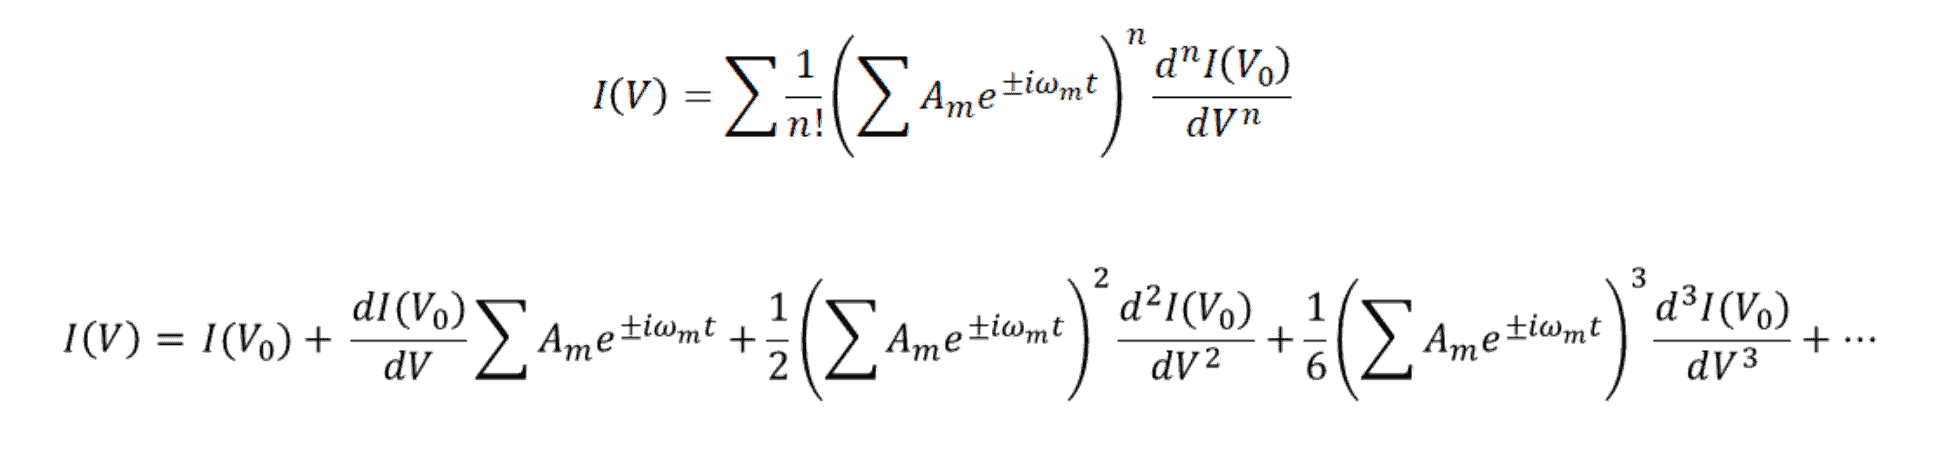 Intermodulation distortion expanded polynomial equations